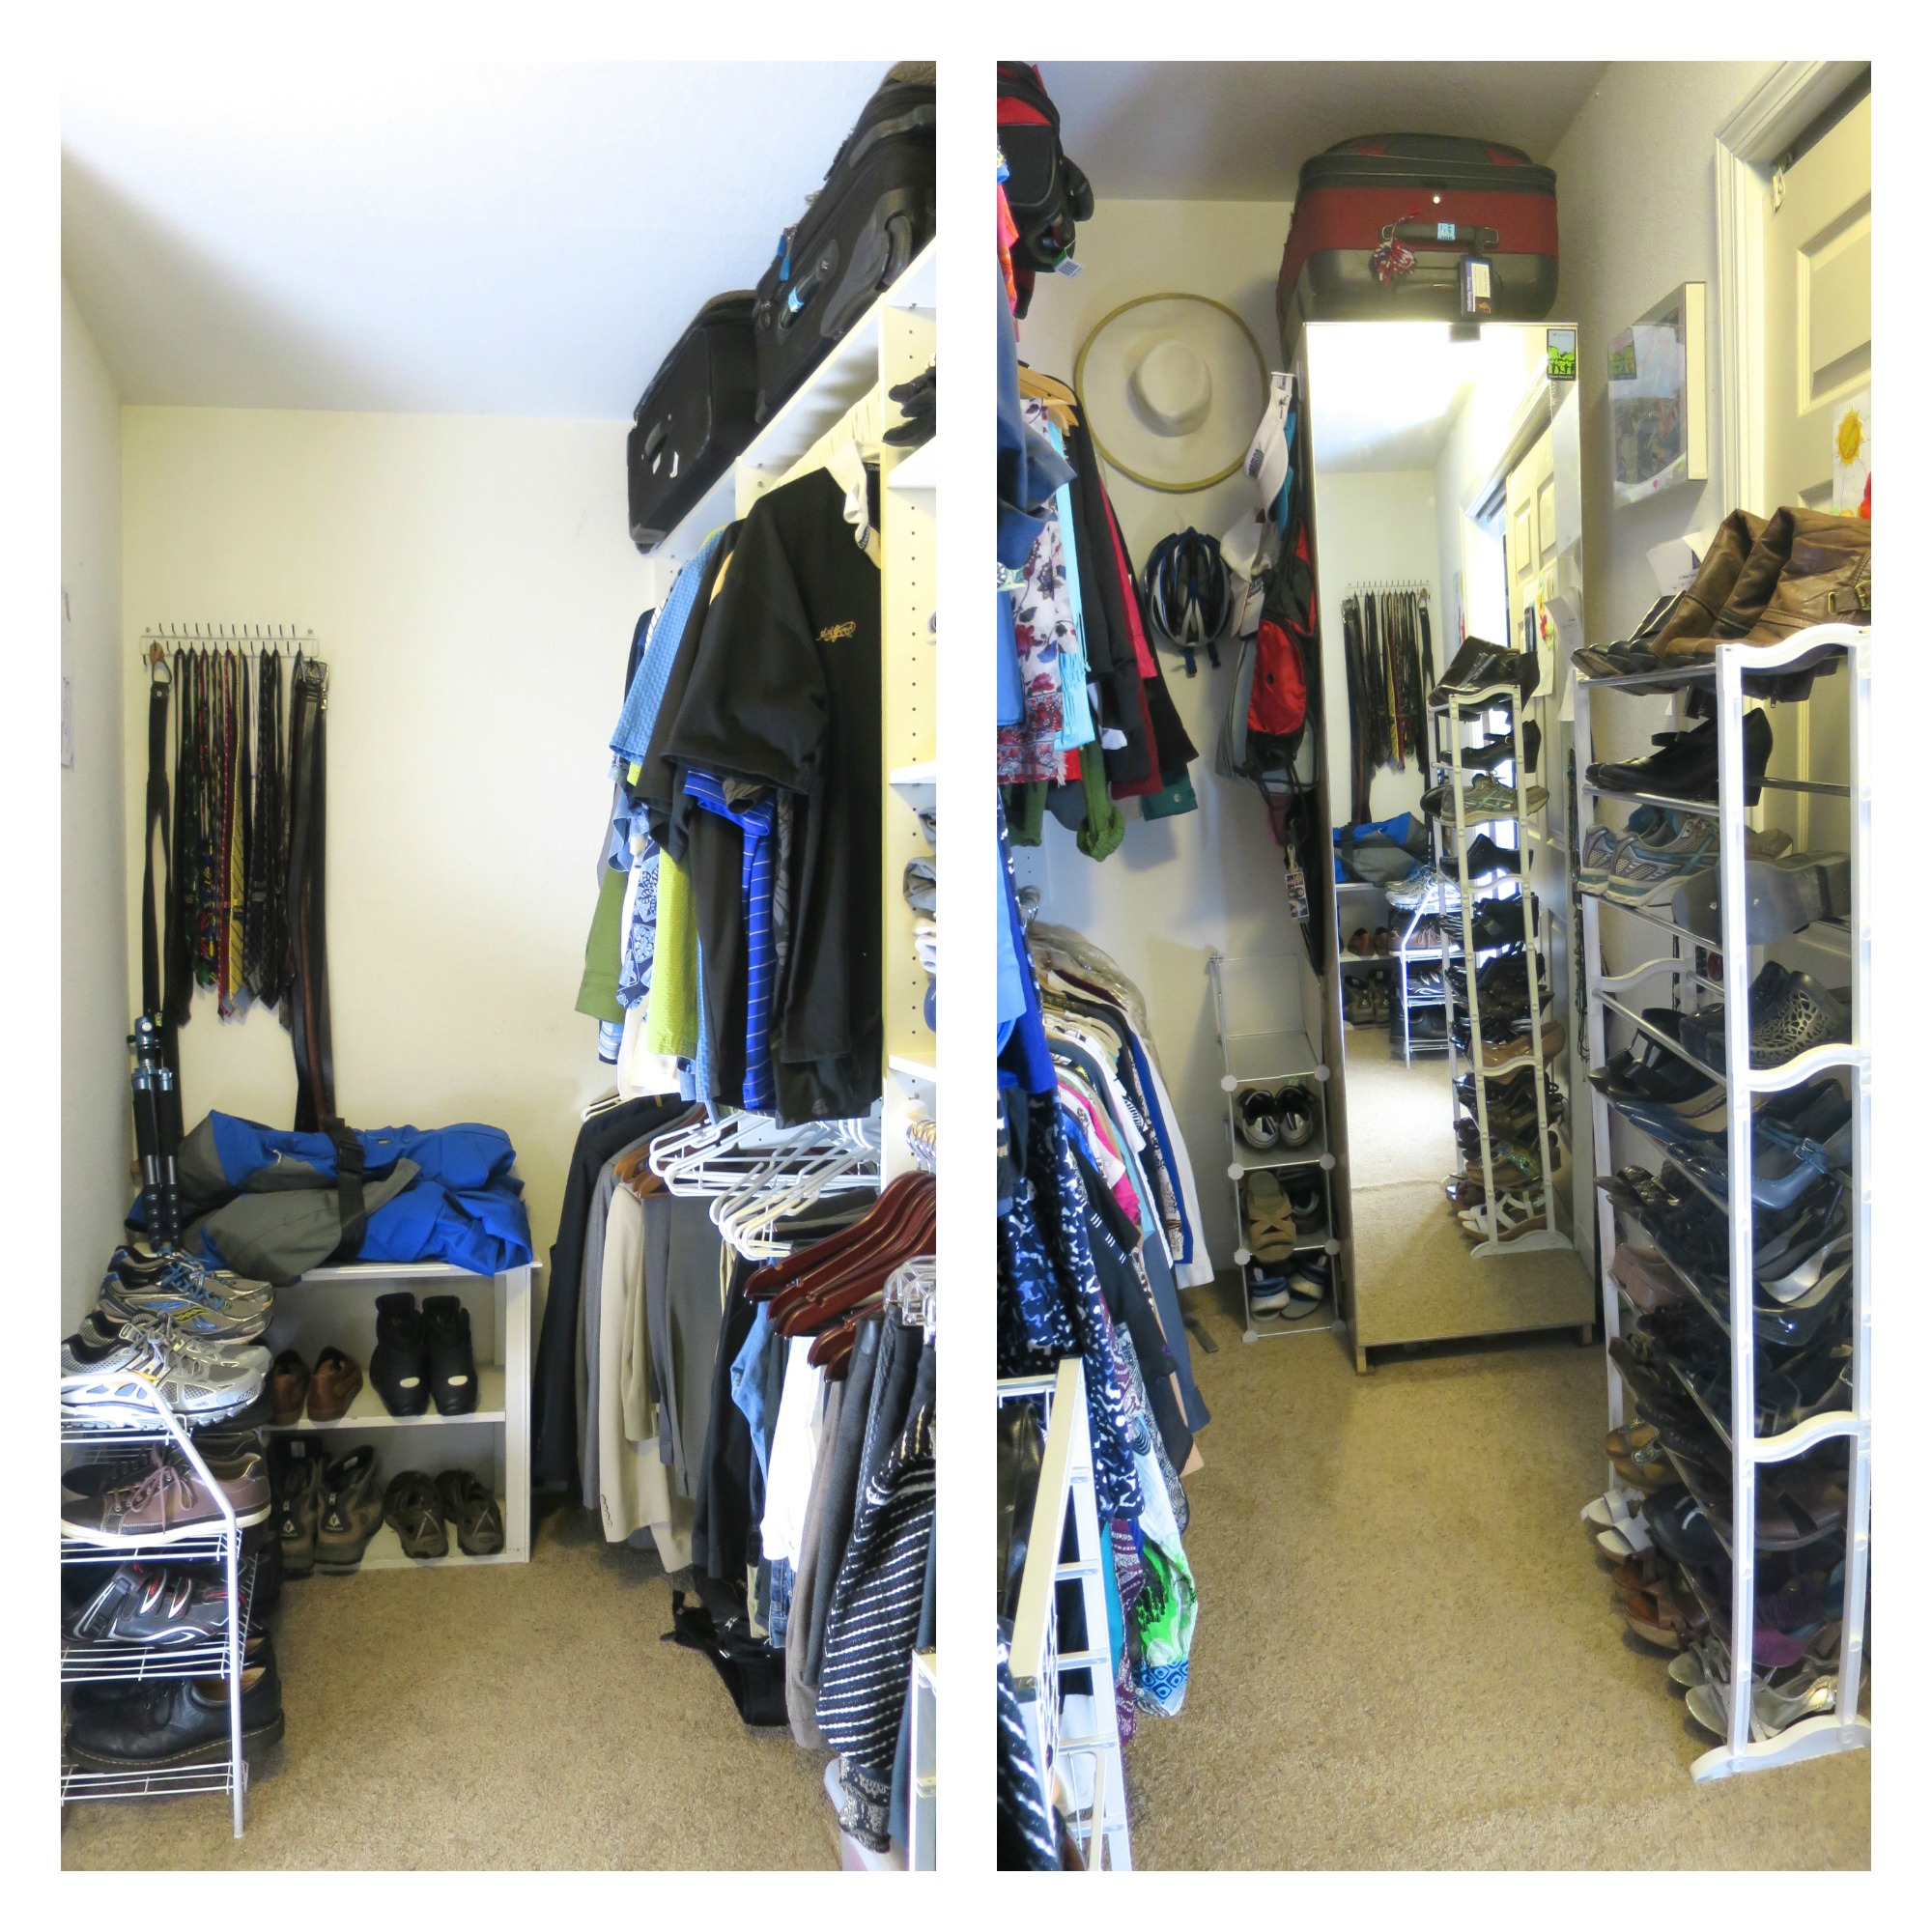 My Closet Re-Organization Ends